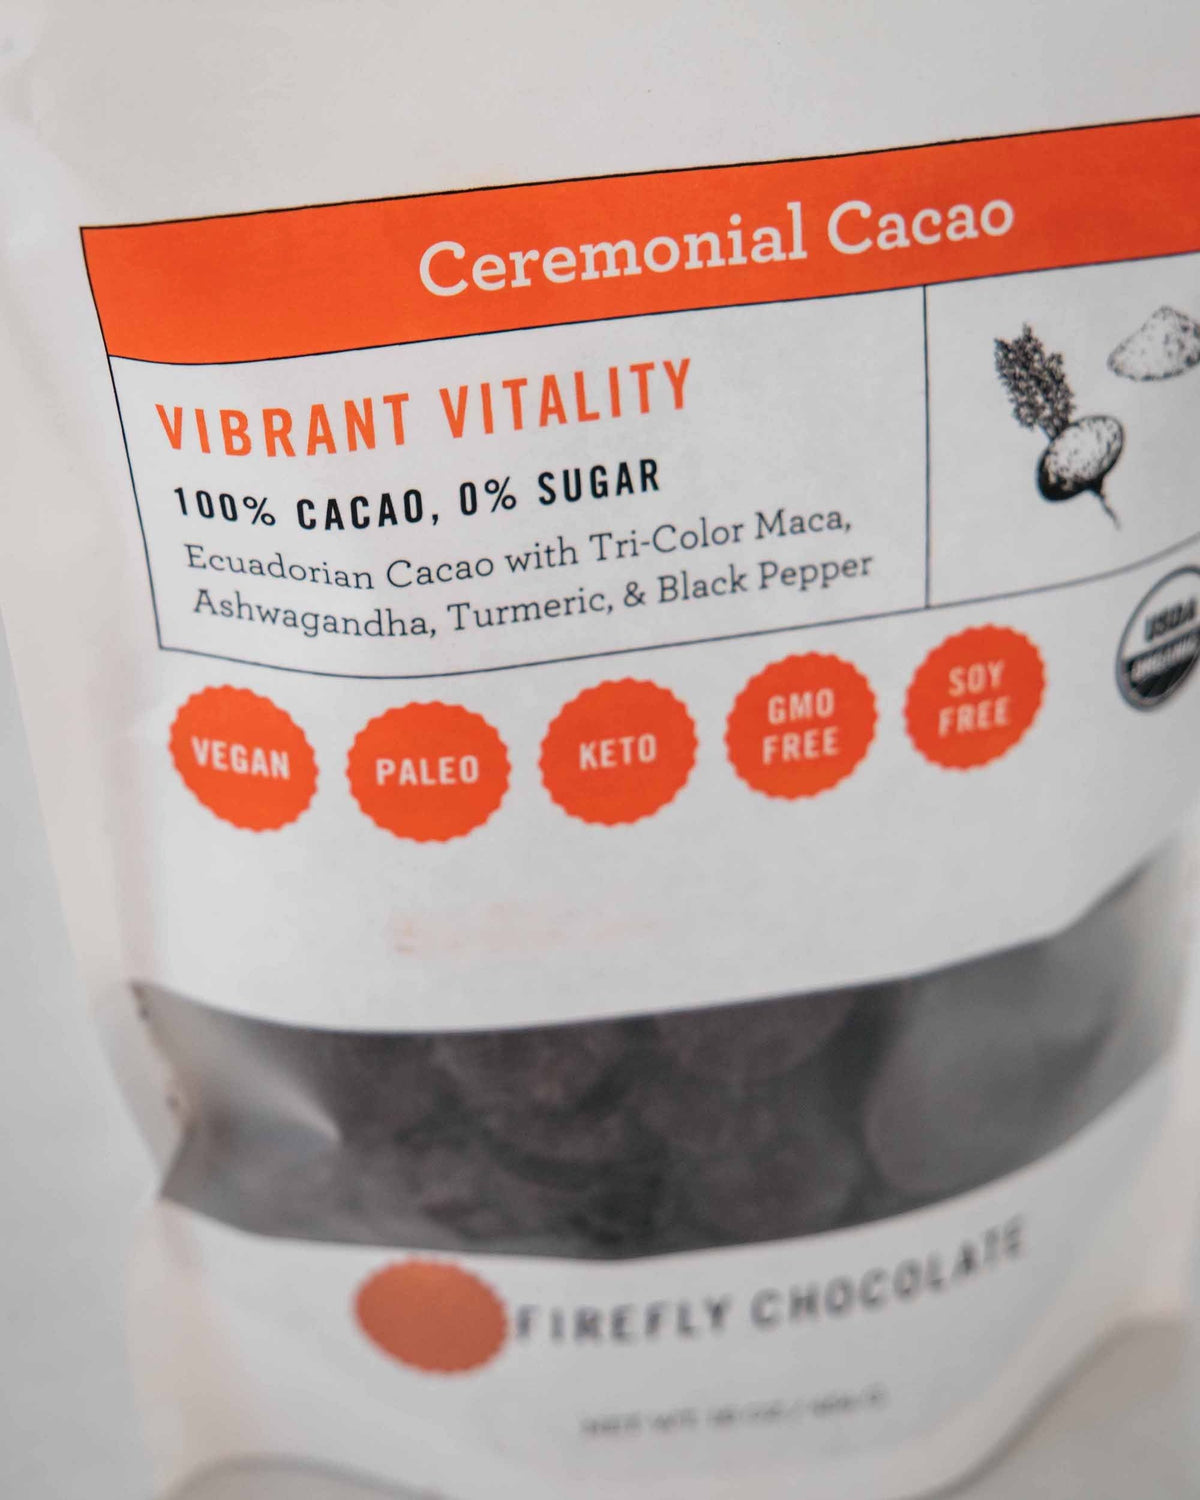 Vibrant Vitality 100% Ceremonial Cacao Drink